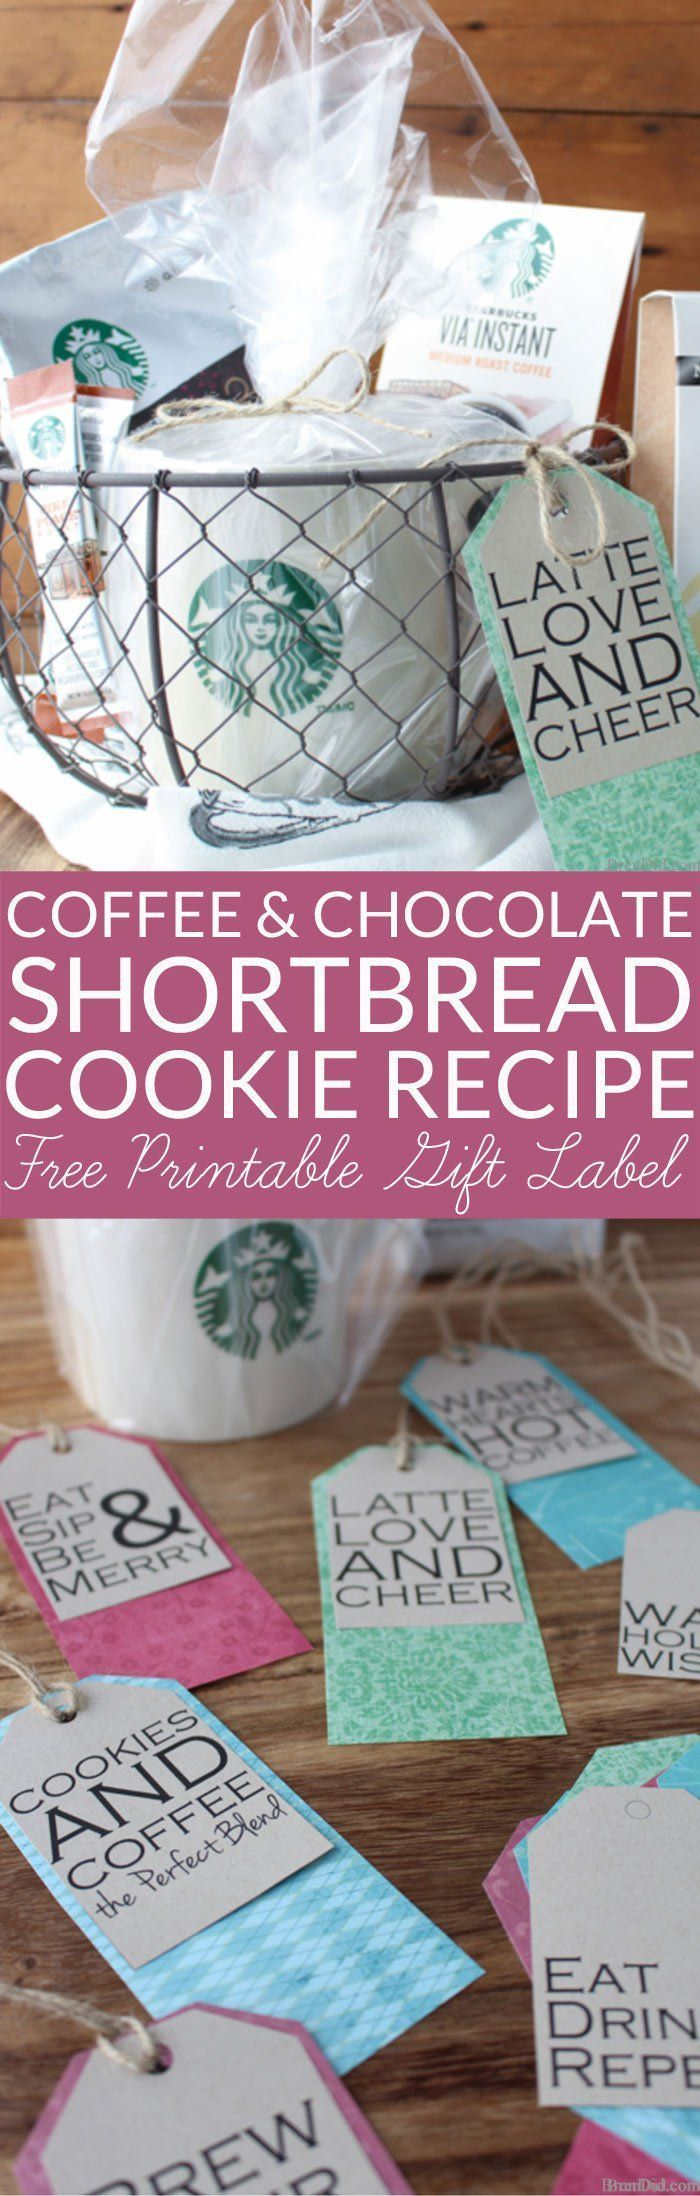 This Coffee and Chocolate Shortbread Recipe is perfect for cookie exchanges and ...